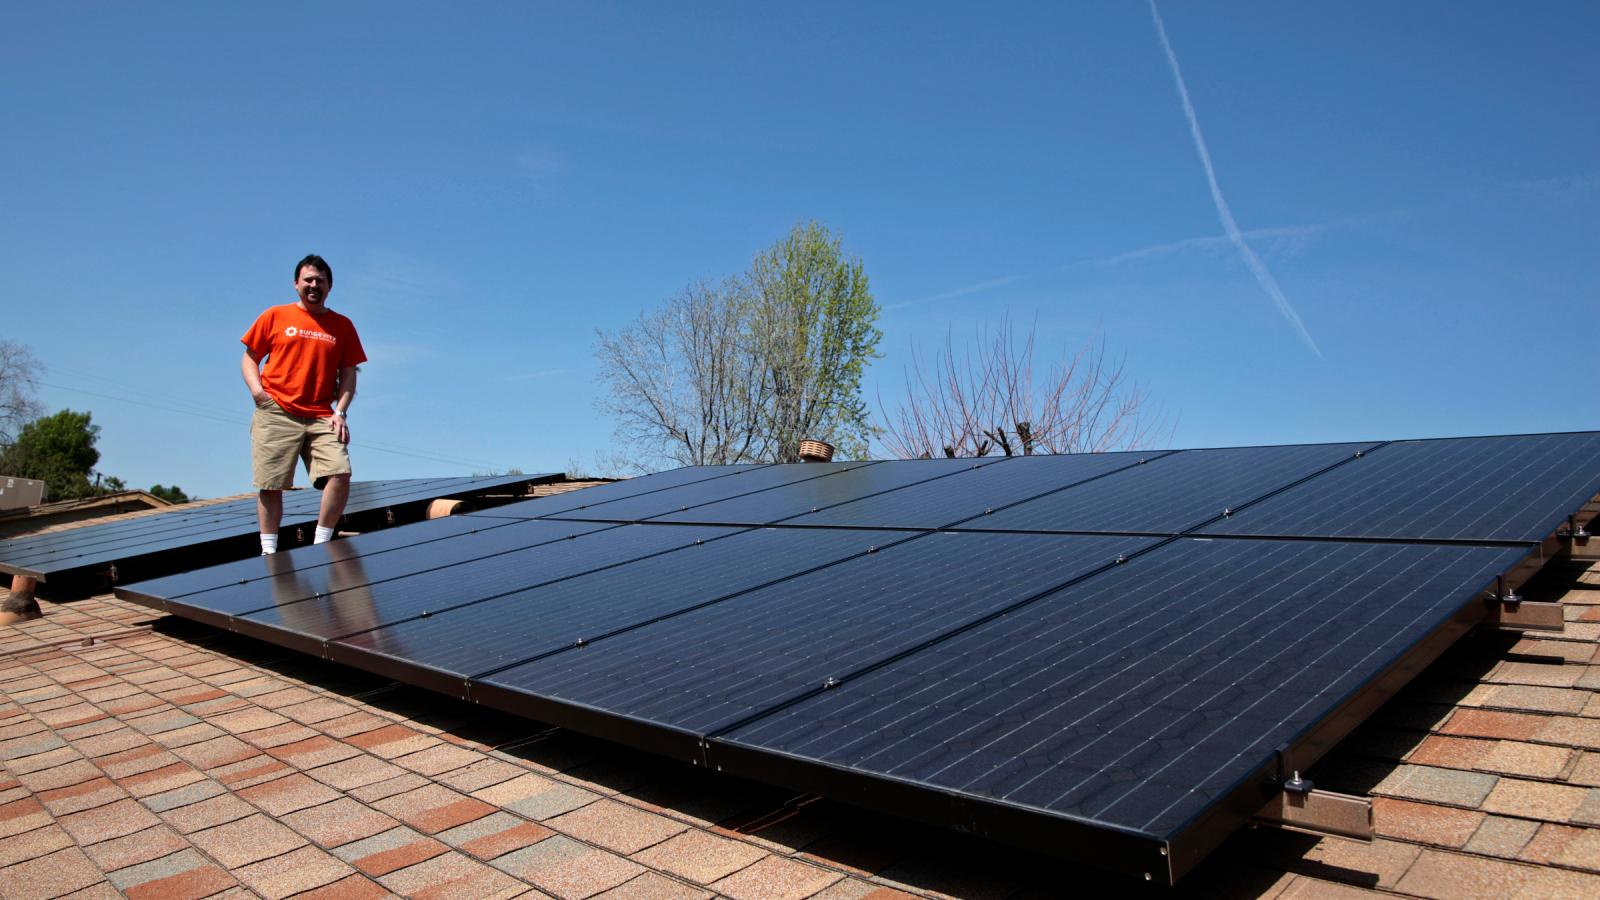 Why Us Power Companies Dont Want You Putting A Solar Panel On Your How Does The Make Electricity From Sunlight Roof Quartz